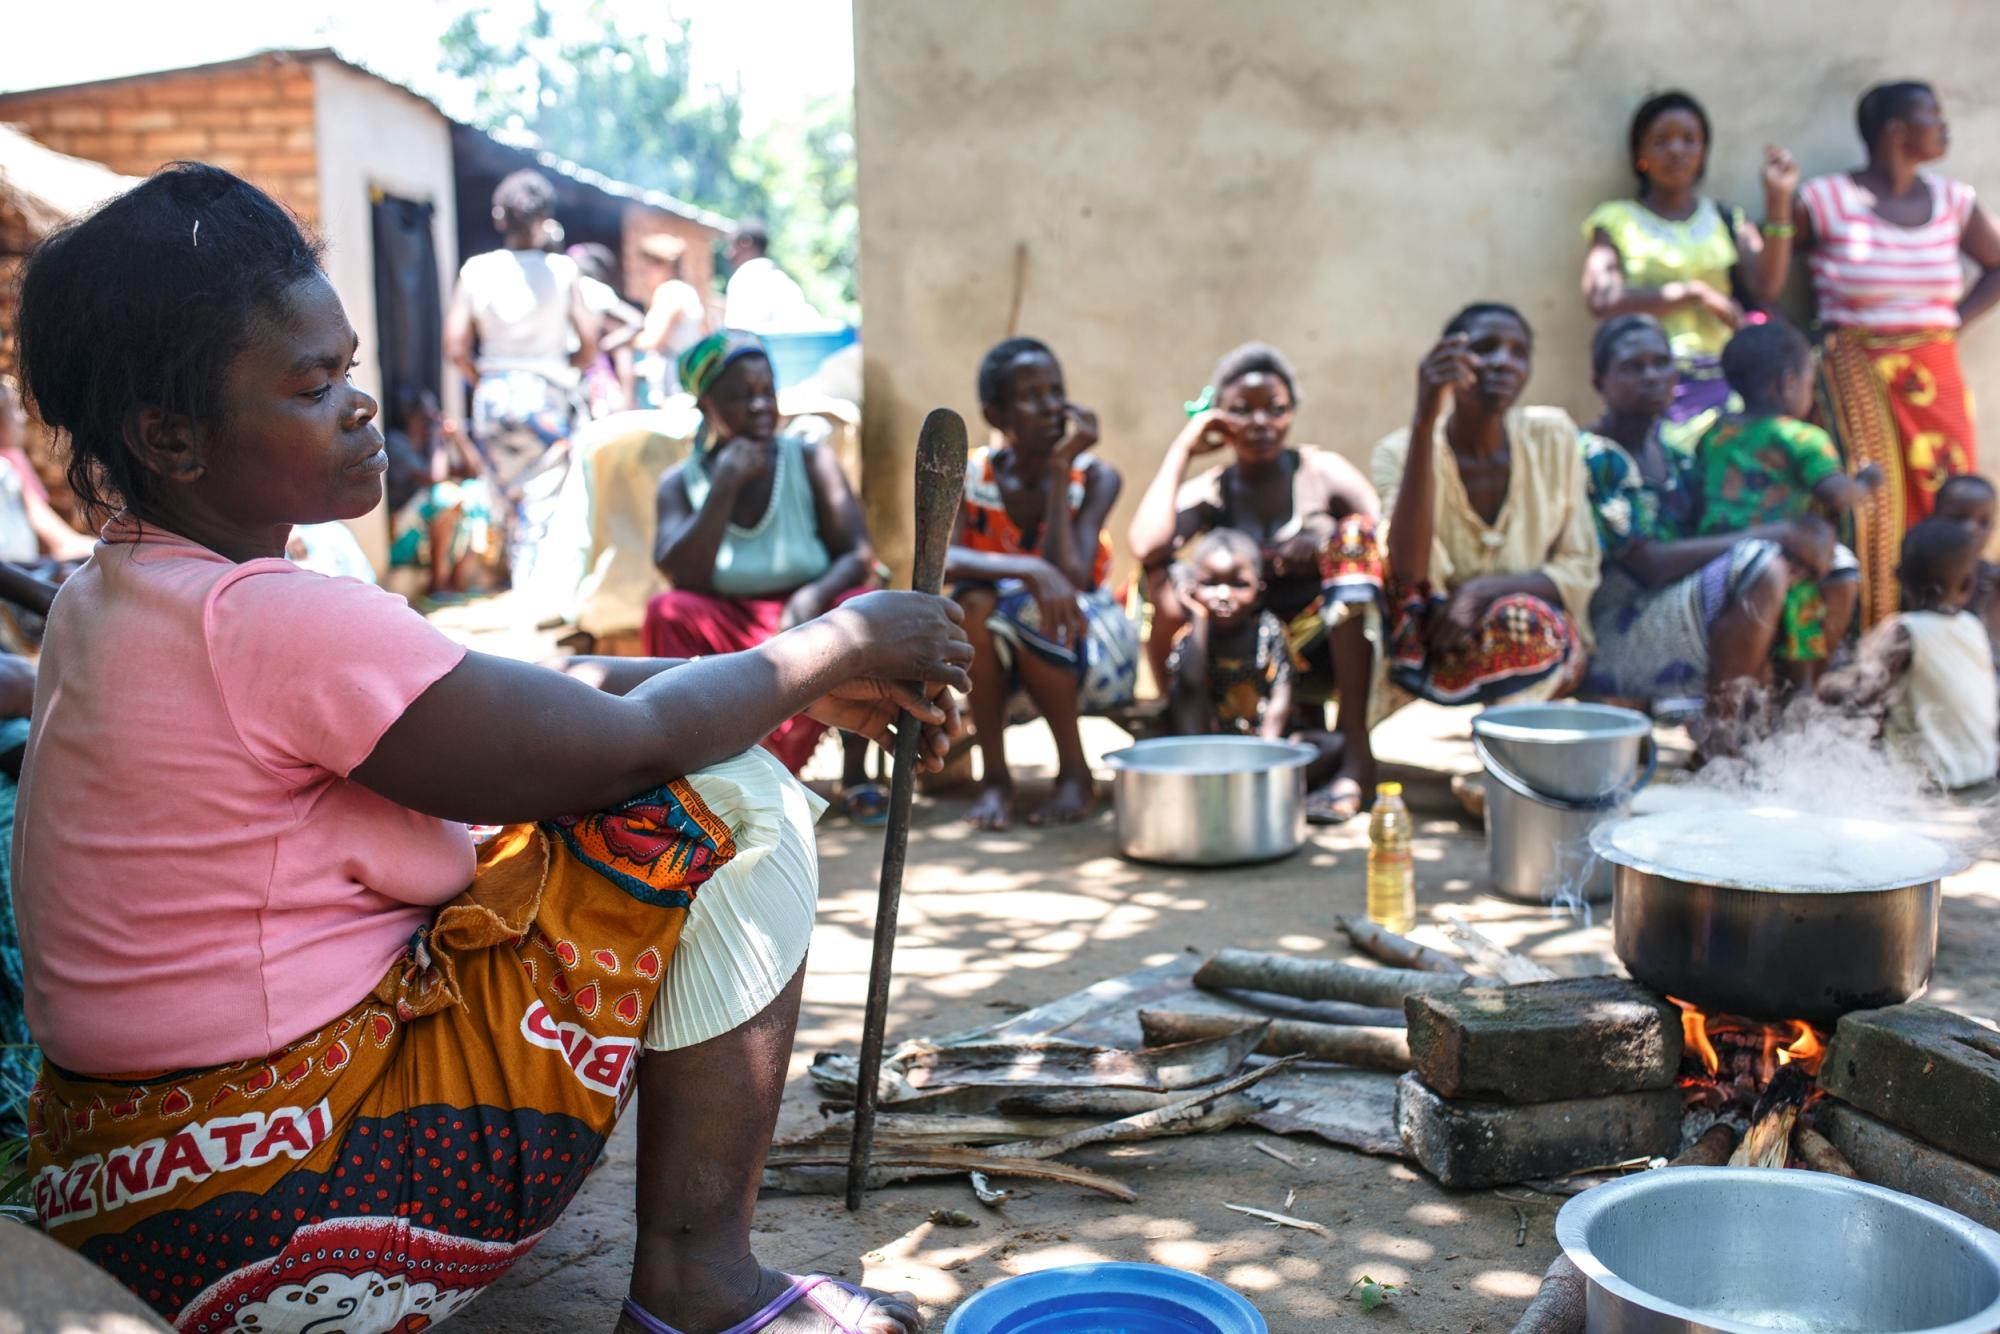 Women in Pitala, a small village near Lake Malawi in the north of the country, cooking over an open 'three-stone' fire